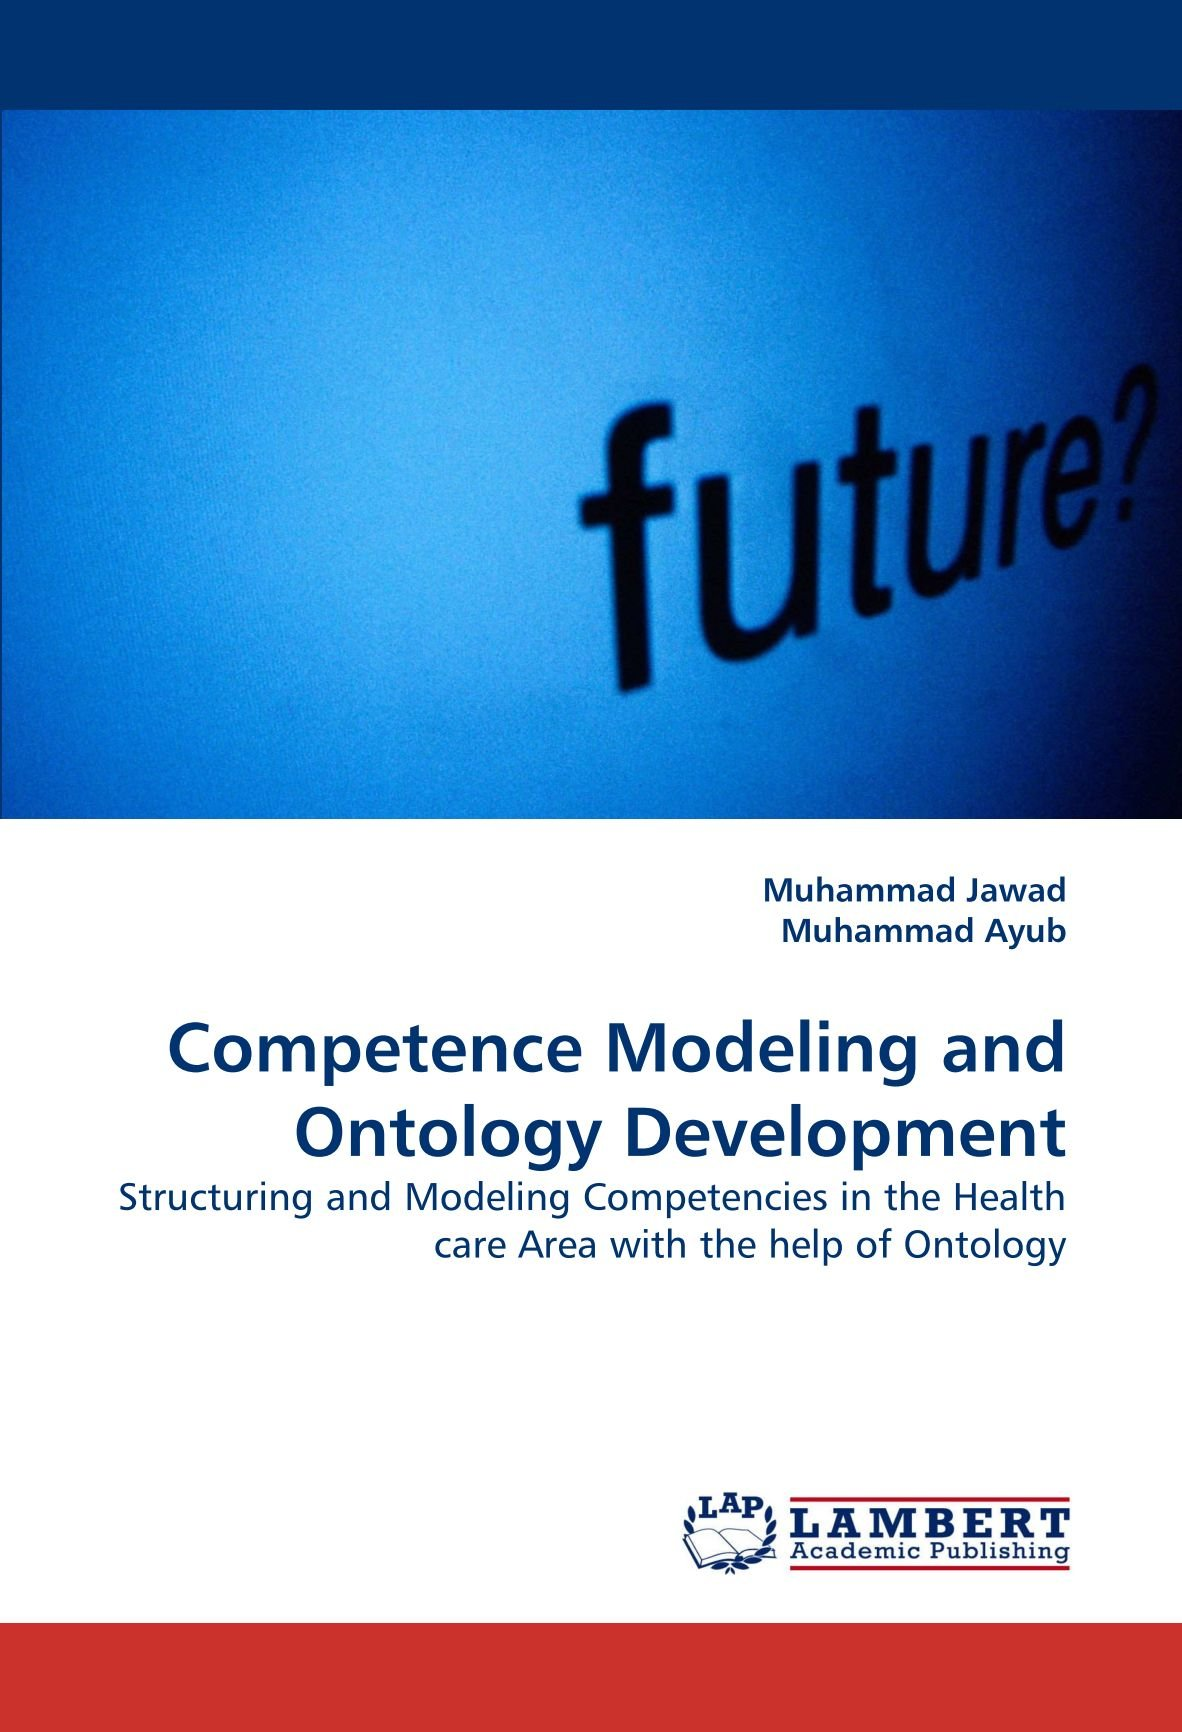 Download Competence Modeling and Ontology Development: Structuring and Modeling Competencies in the Health care Area with the help of Ontology PDF